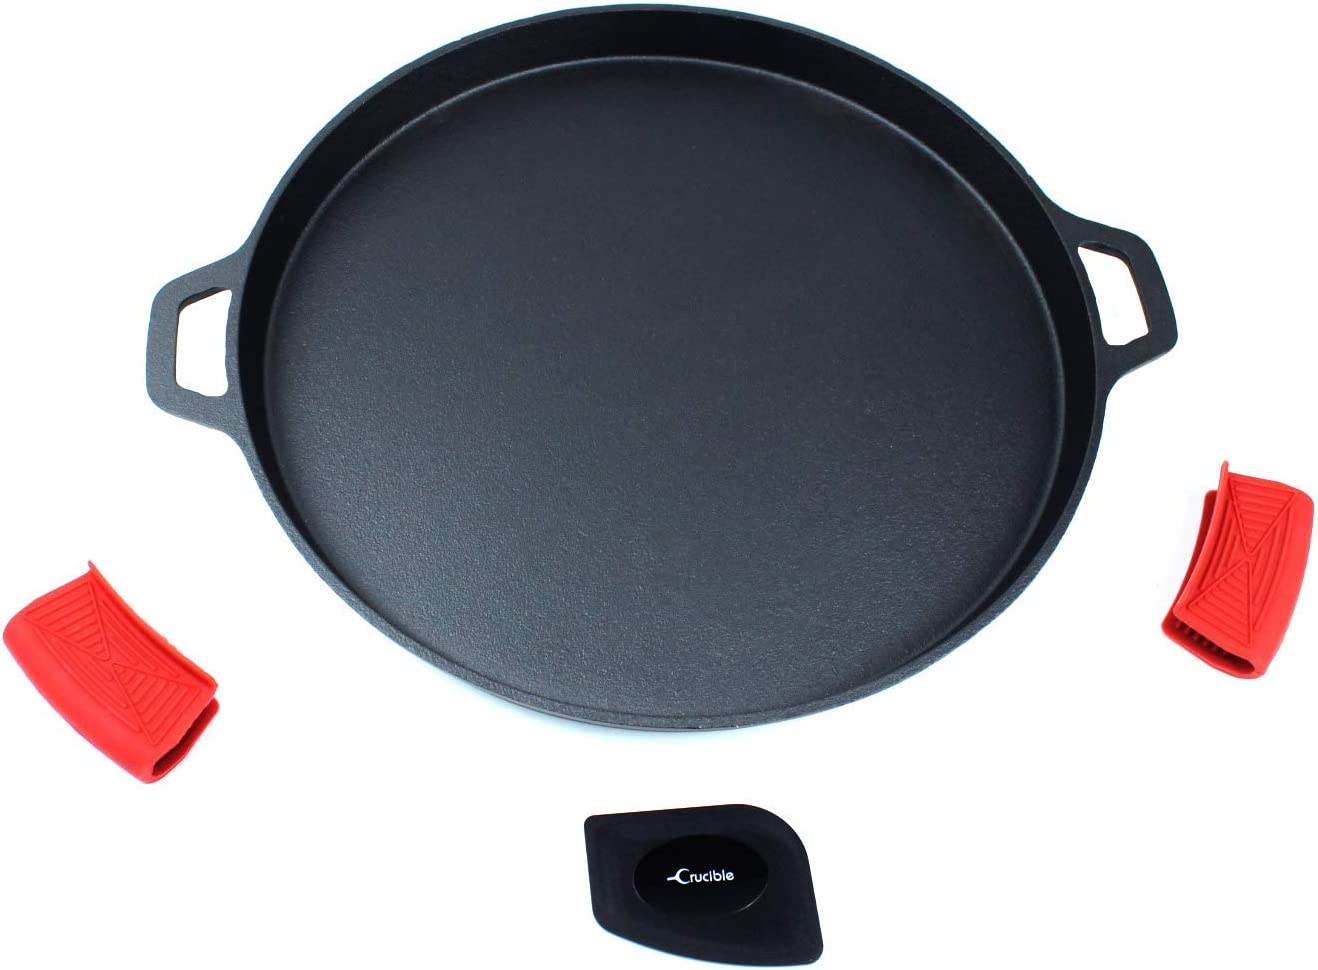 "Cast Iron Pizza Pan 13.58"" (Pre-Seasoned), Baking Pan, Cooking Griddle, for Stove, Grill, BBQ and Oven - Including Silicone Hot Handle Holders and Scraper"